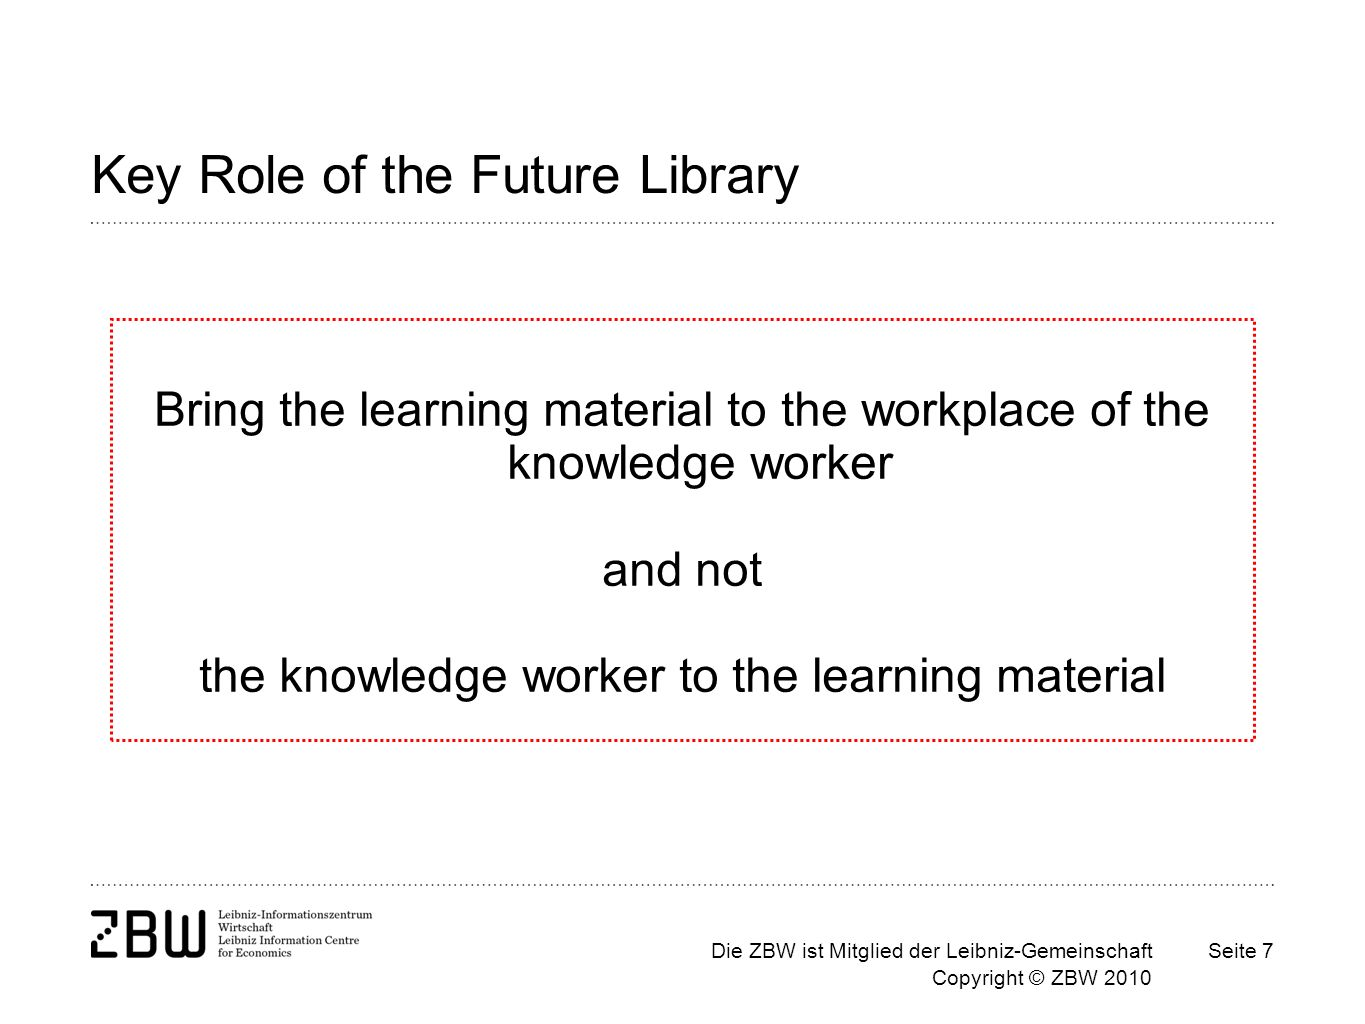 Die ZBW ist Mitglied der Leibniz-Gemeinschaft Copyright © ZBW 2010 Seite 7 Key Role of the Future Library Bring the learning material to the workplace of the knowledge worker and not the knowledge worker to the learning material